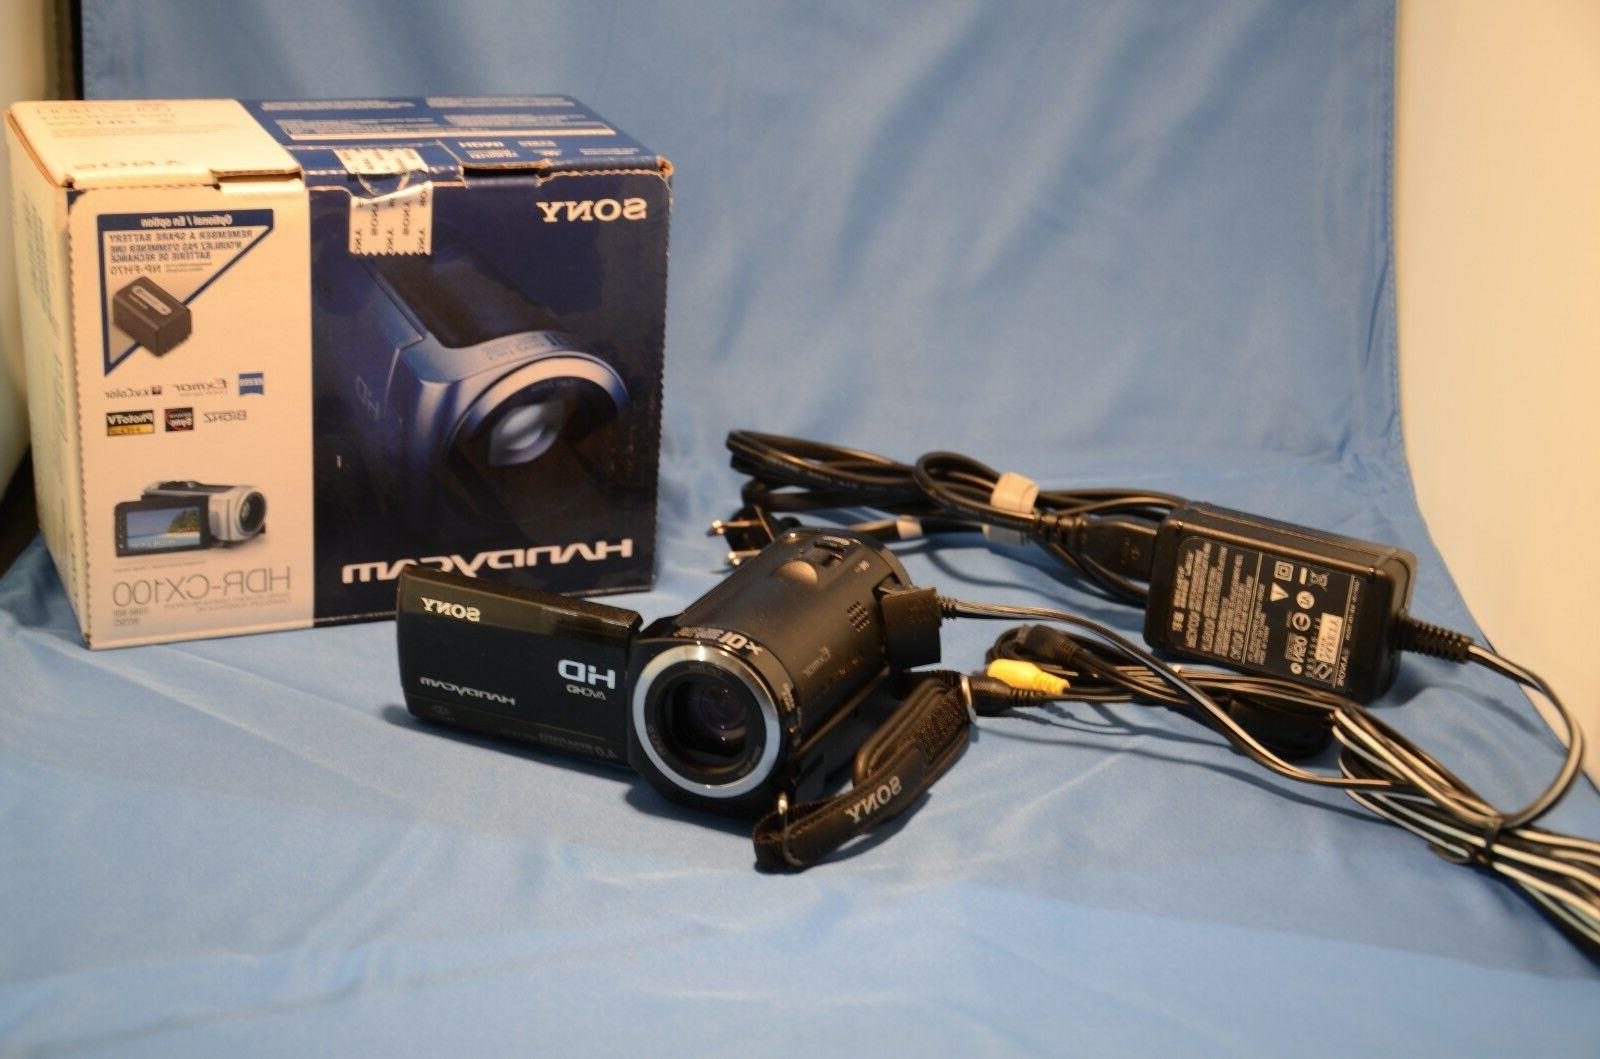 hdr cx100 high definition camcorder